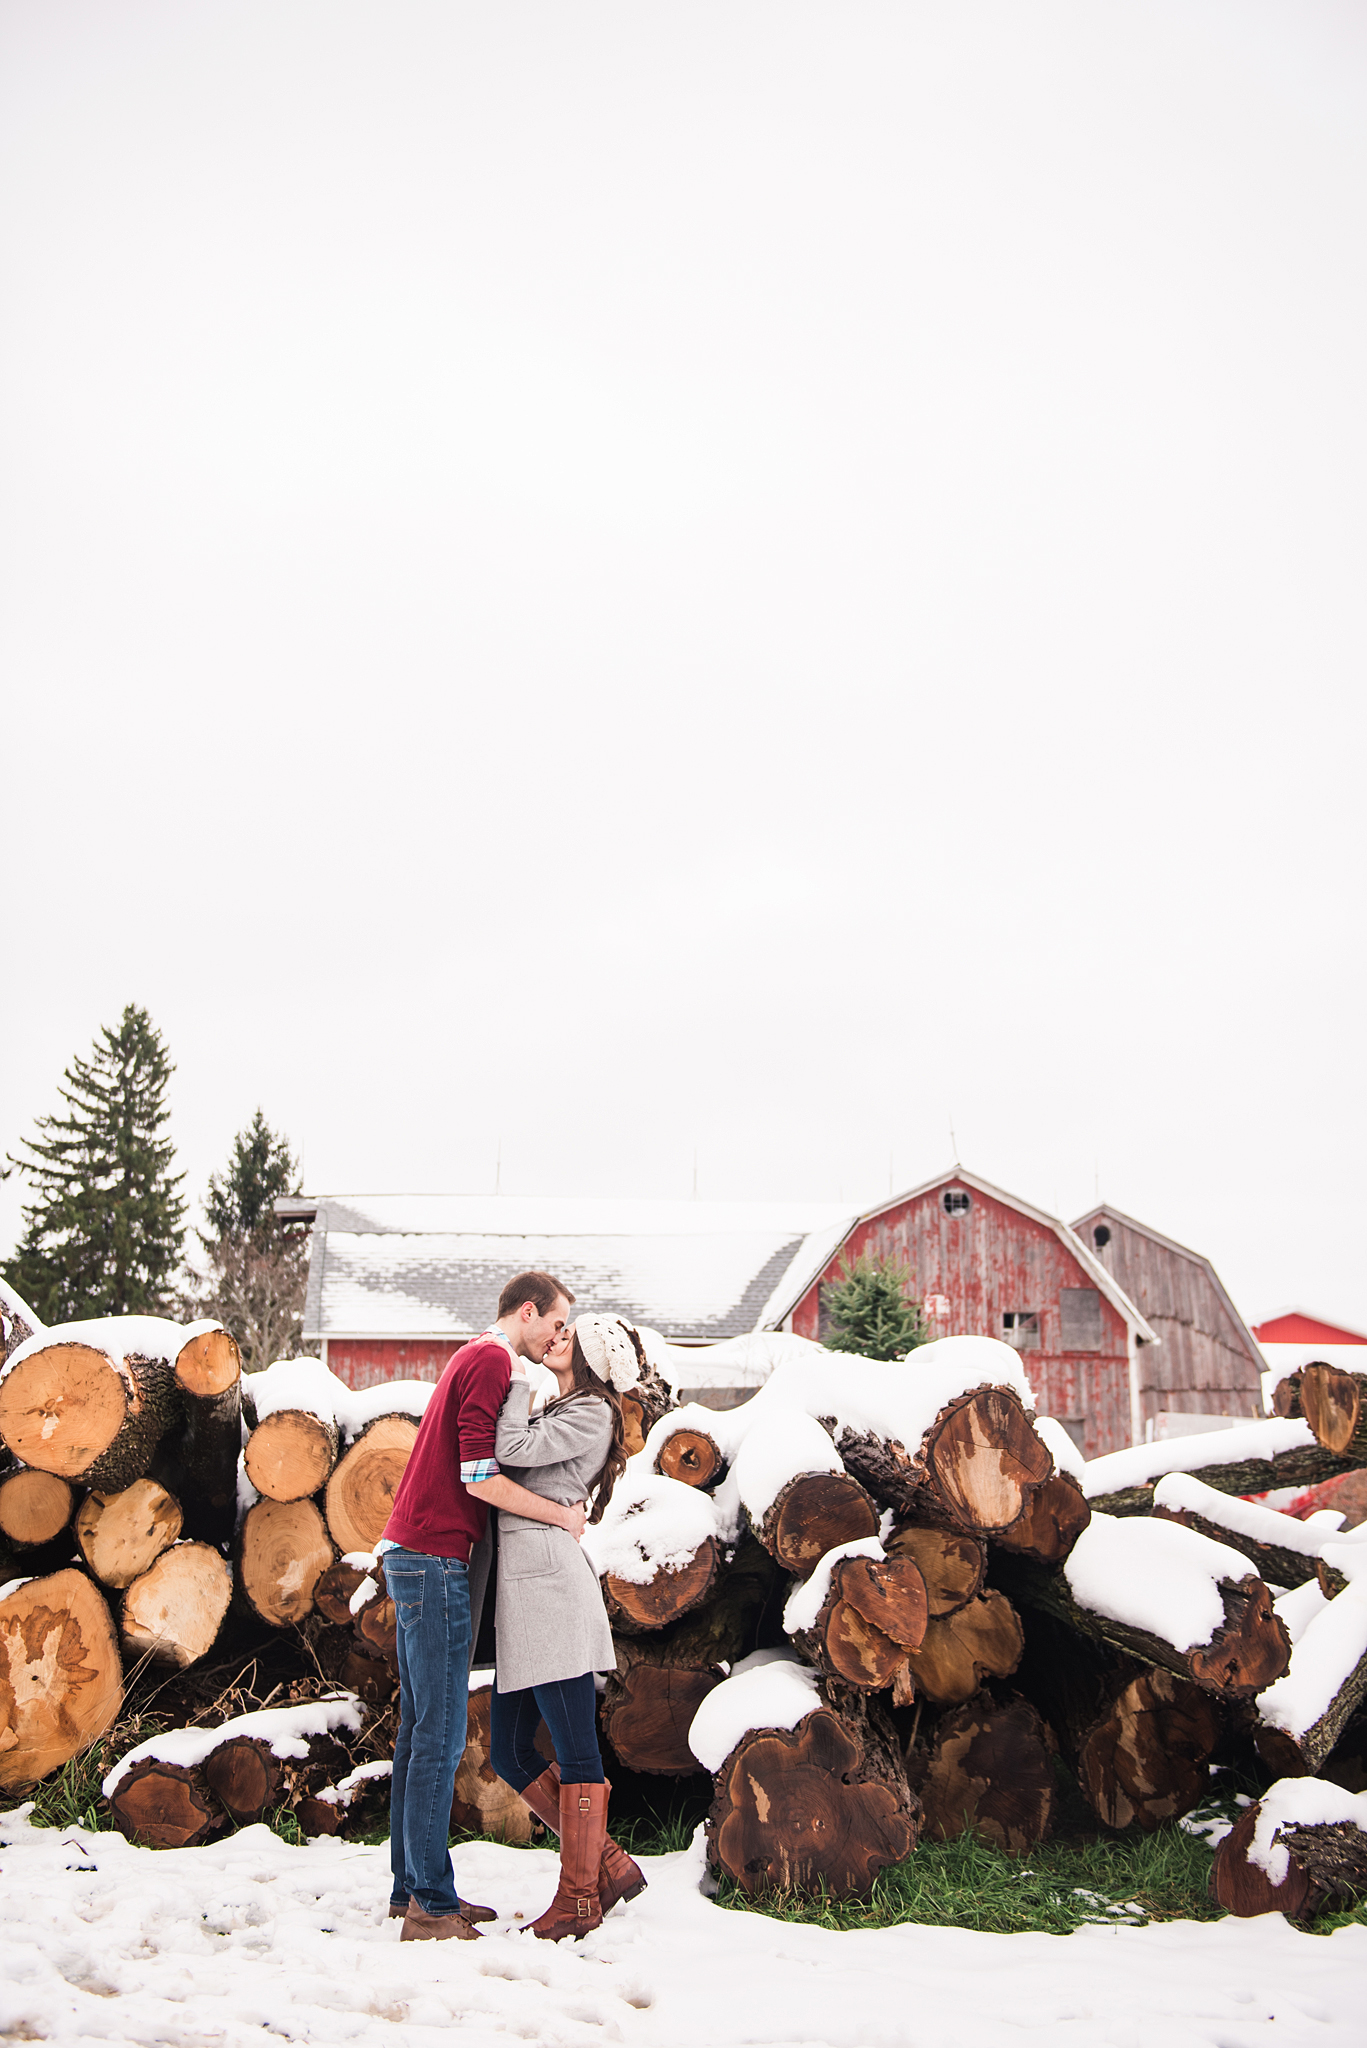 Woody_Acres_Rochester_Engagement_Session_JILL_STUDIO_Rochester_NY_Photographer_154540.jpg